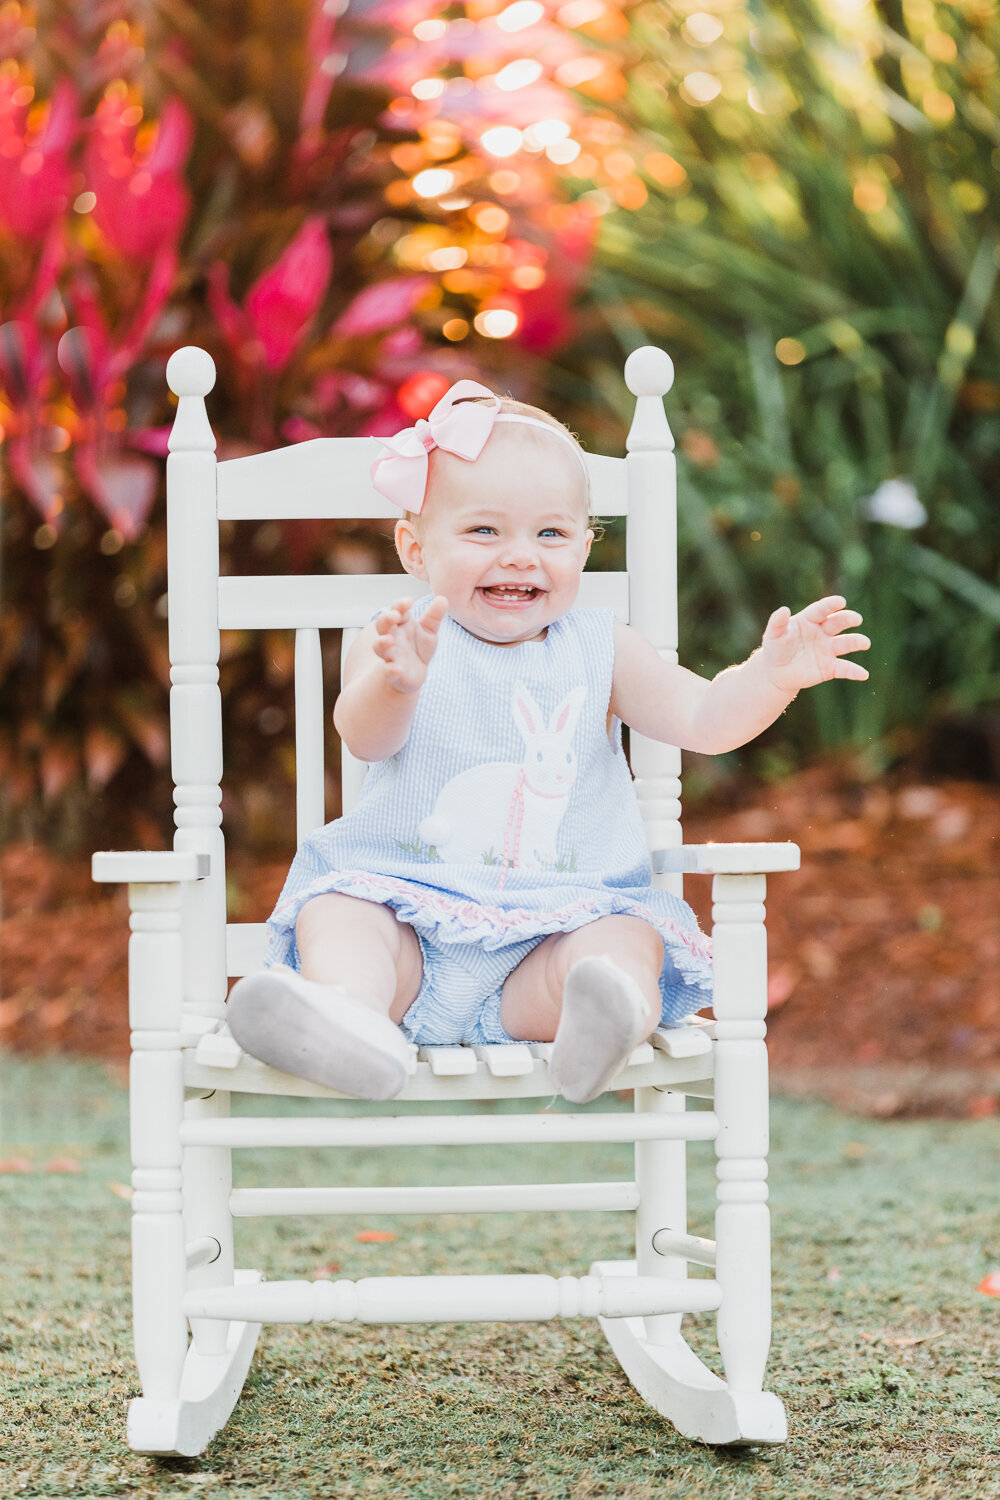 one of the best family photoshoot locations is jacksonville golf and country club